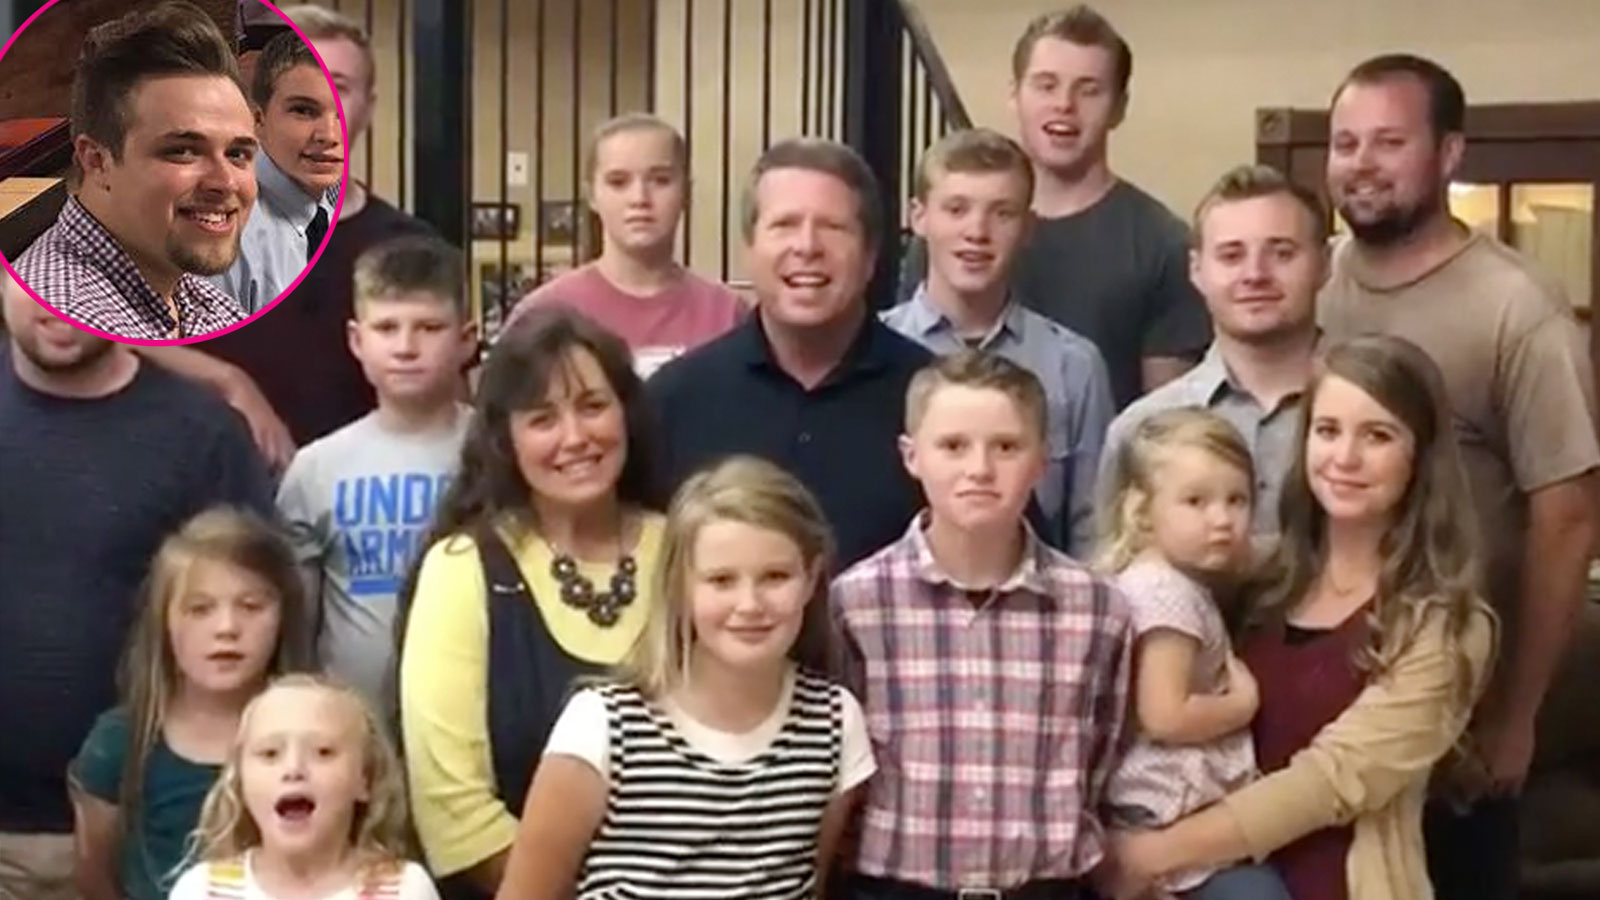 Who Is Caleb Williams? The Duggar Family Friend Arrested for